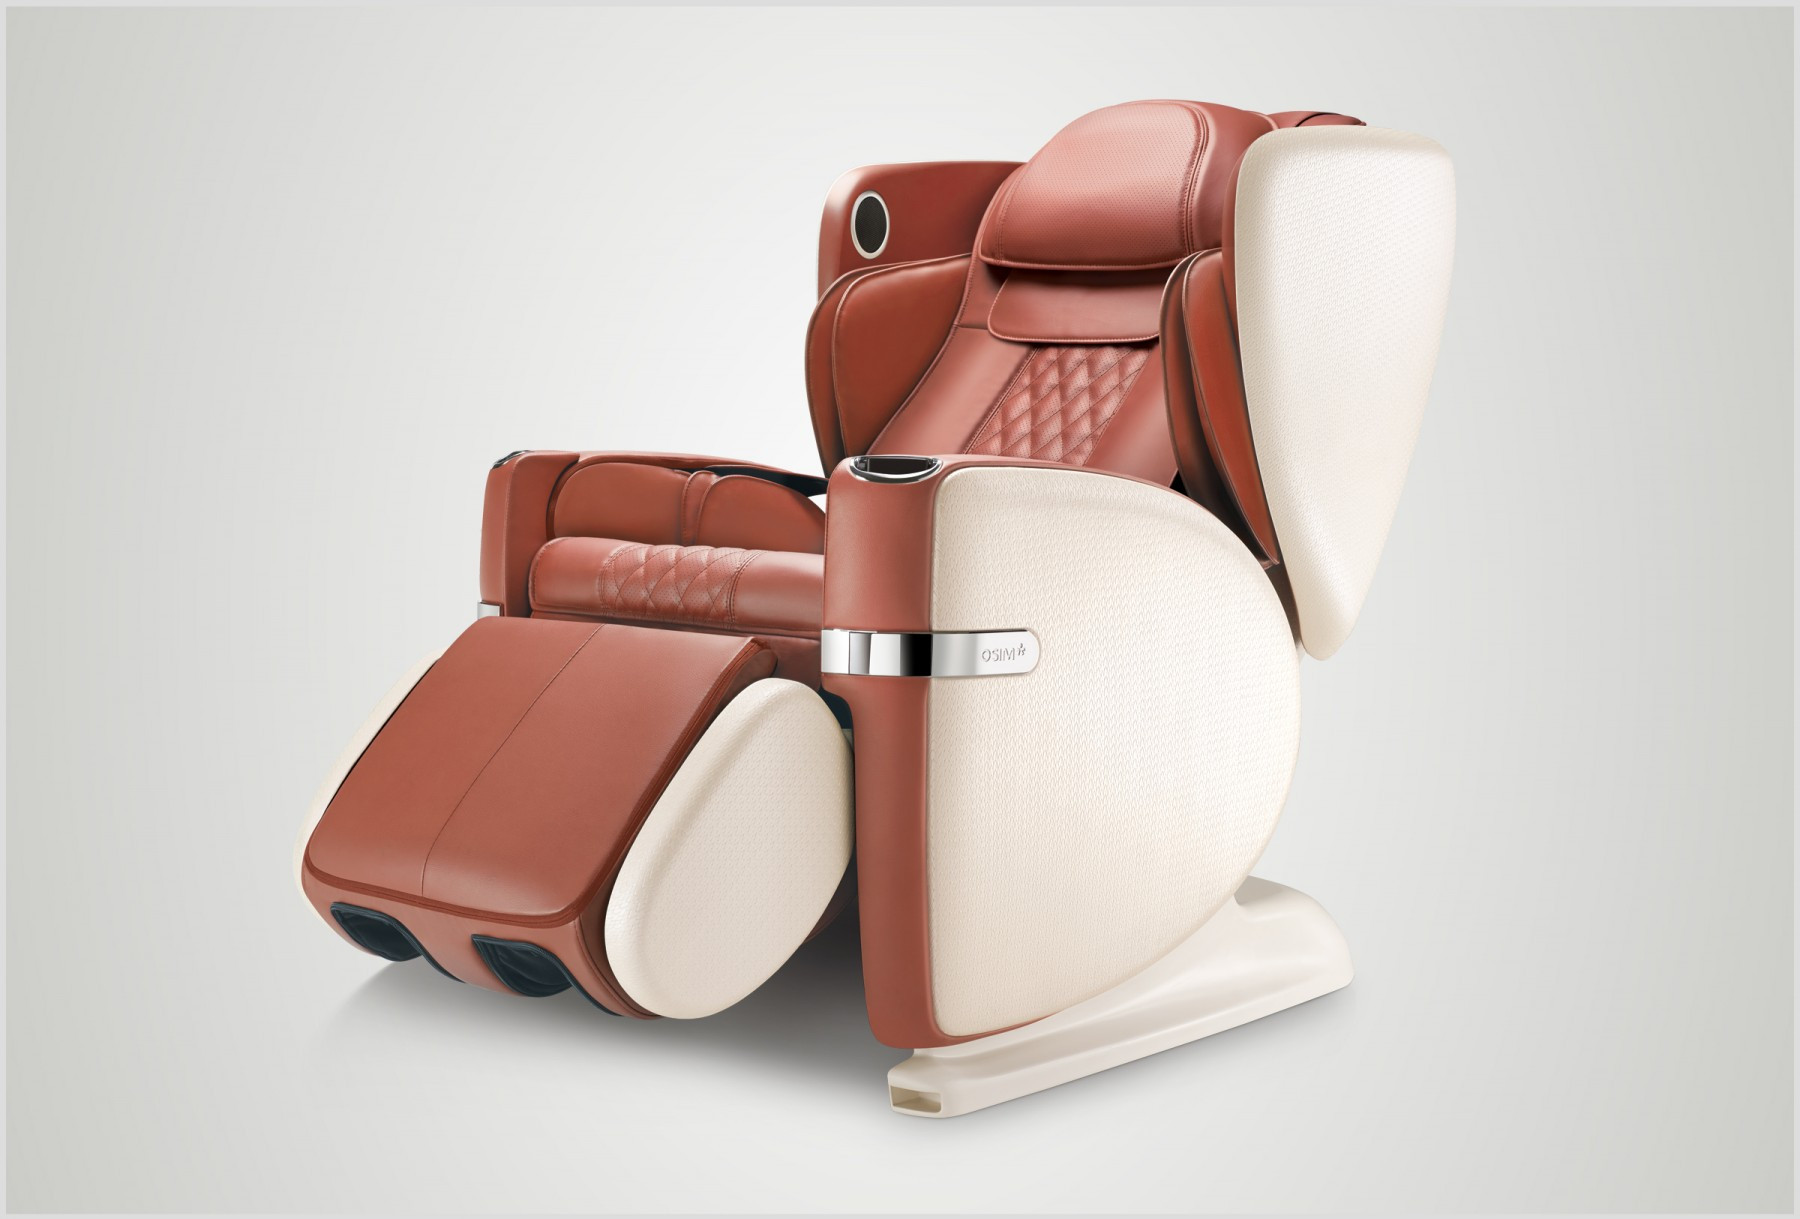 side product feature chairs massage ma chair relax rest panasonic